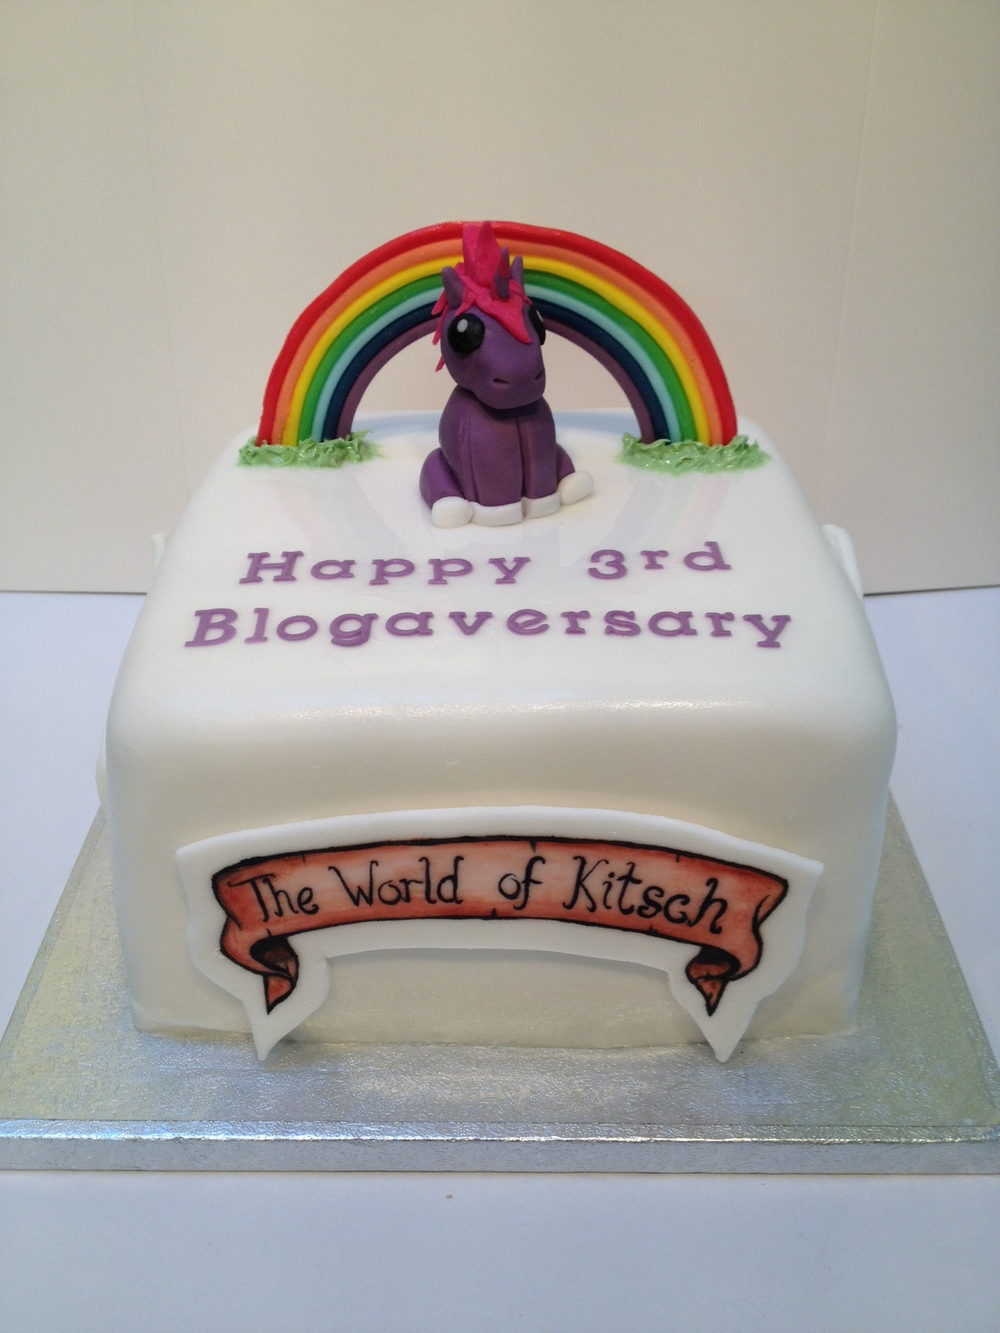 The World of Kitsch 3rd Blogaversary Cake!